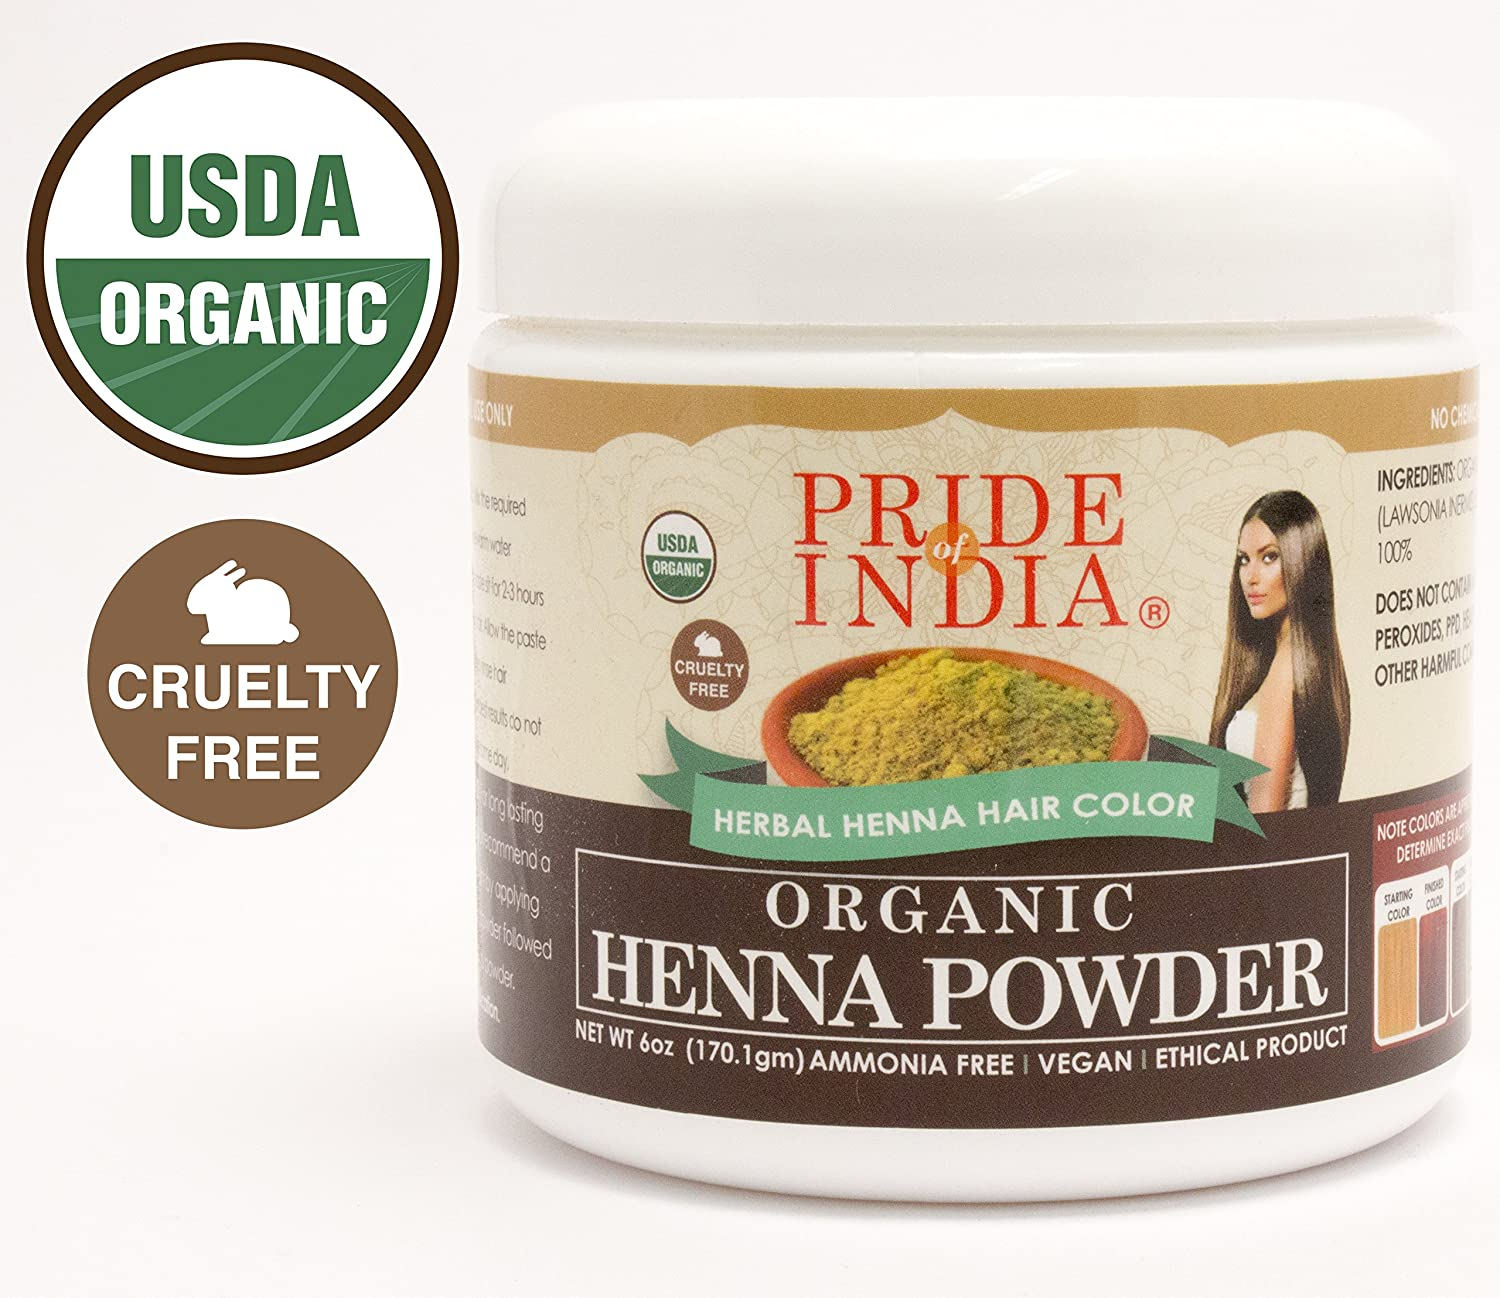 Pride Of India - Henna & Indigo Mix Hair Color Powder - Brown Color, Half Pound (8oz - 227gm) - 1 Pair Free Gloves Included